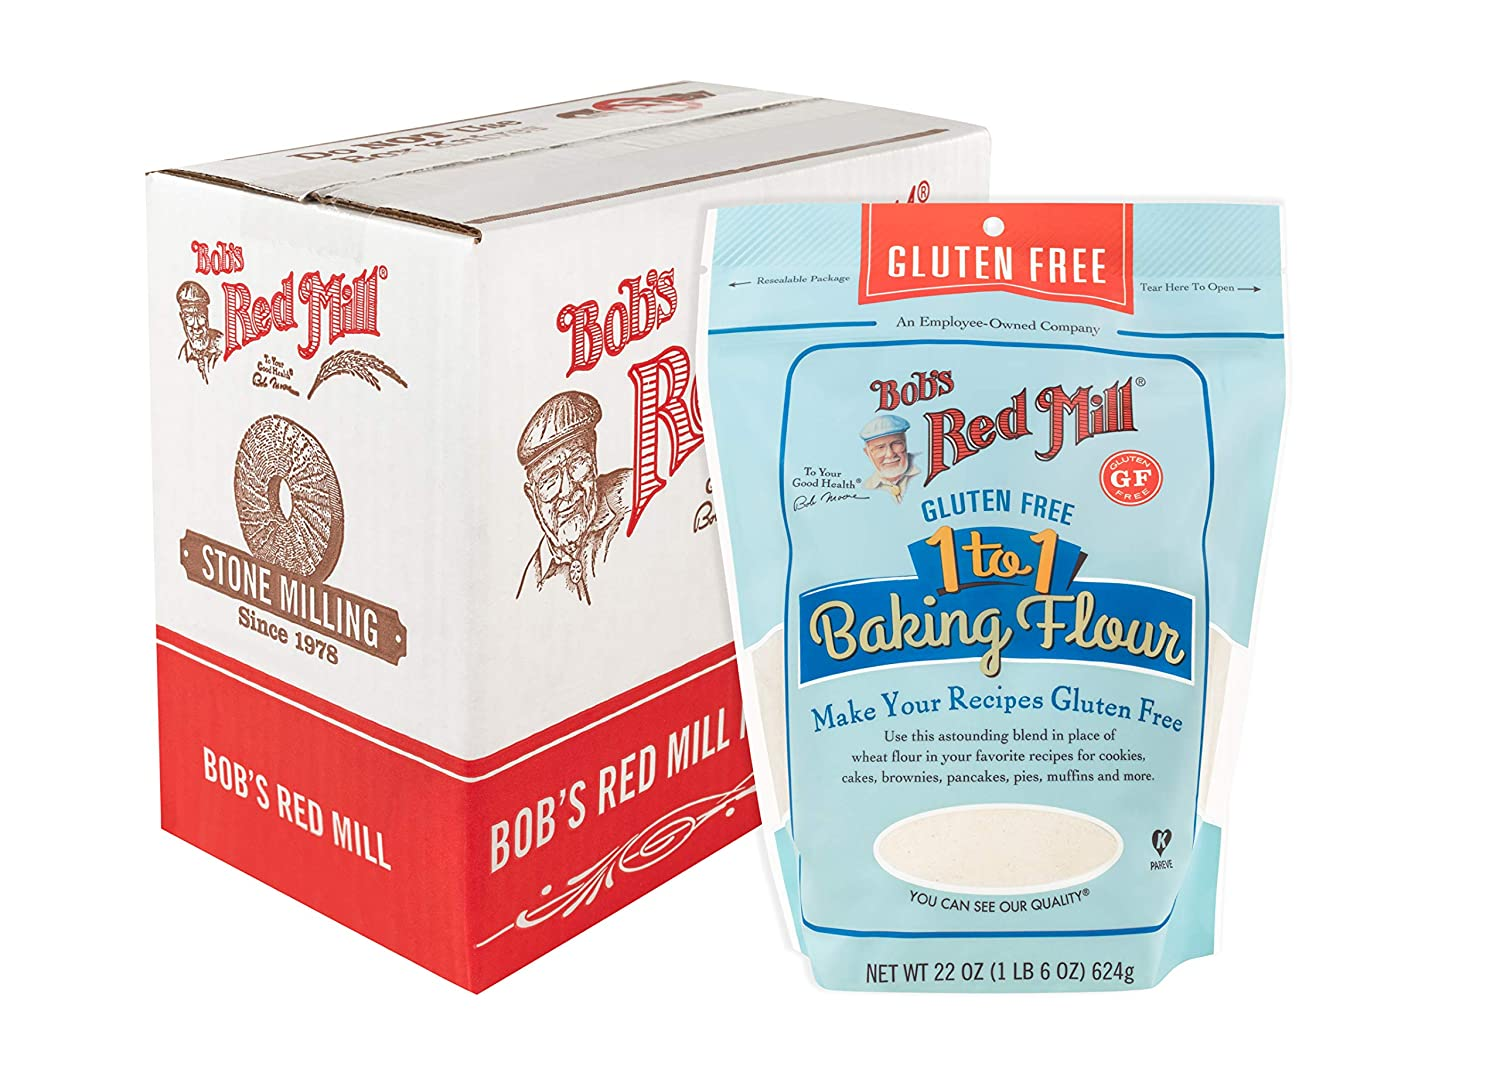 Bob's Red Mill Bob's Red Mill Gluten Free 1-to-1 Baking Flour, 22 Ounce, Pack of 4